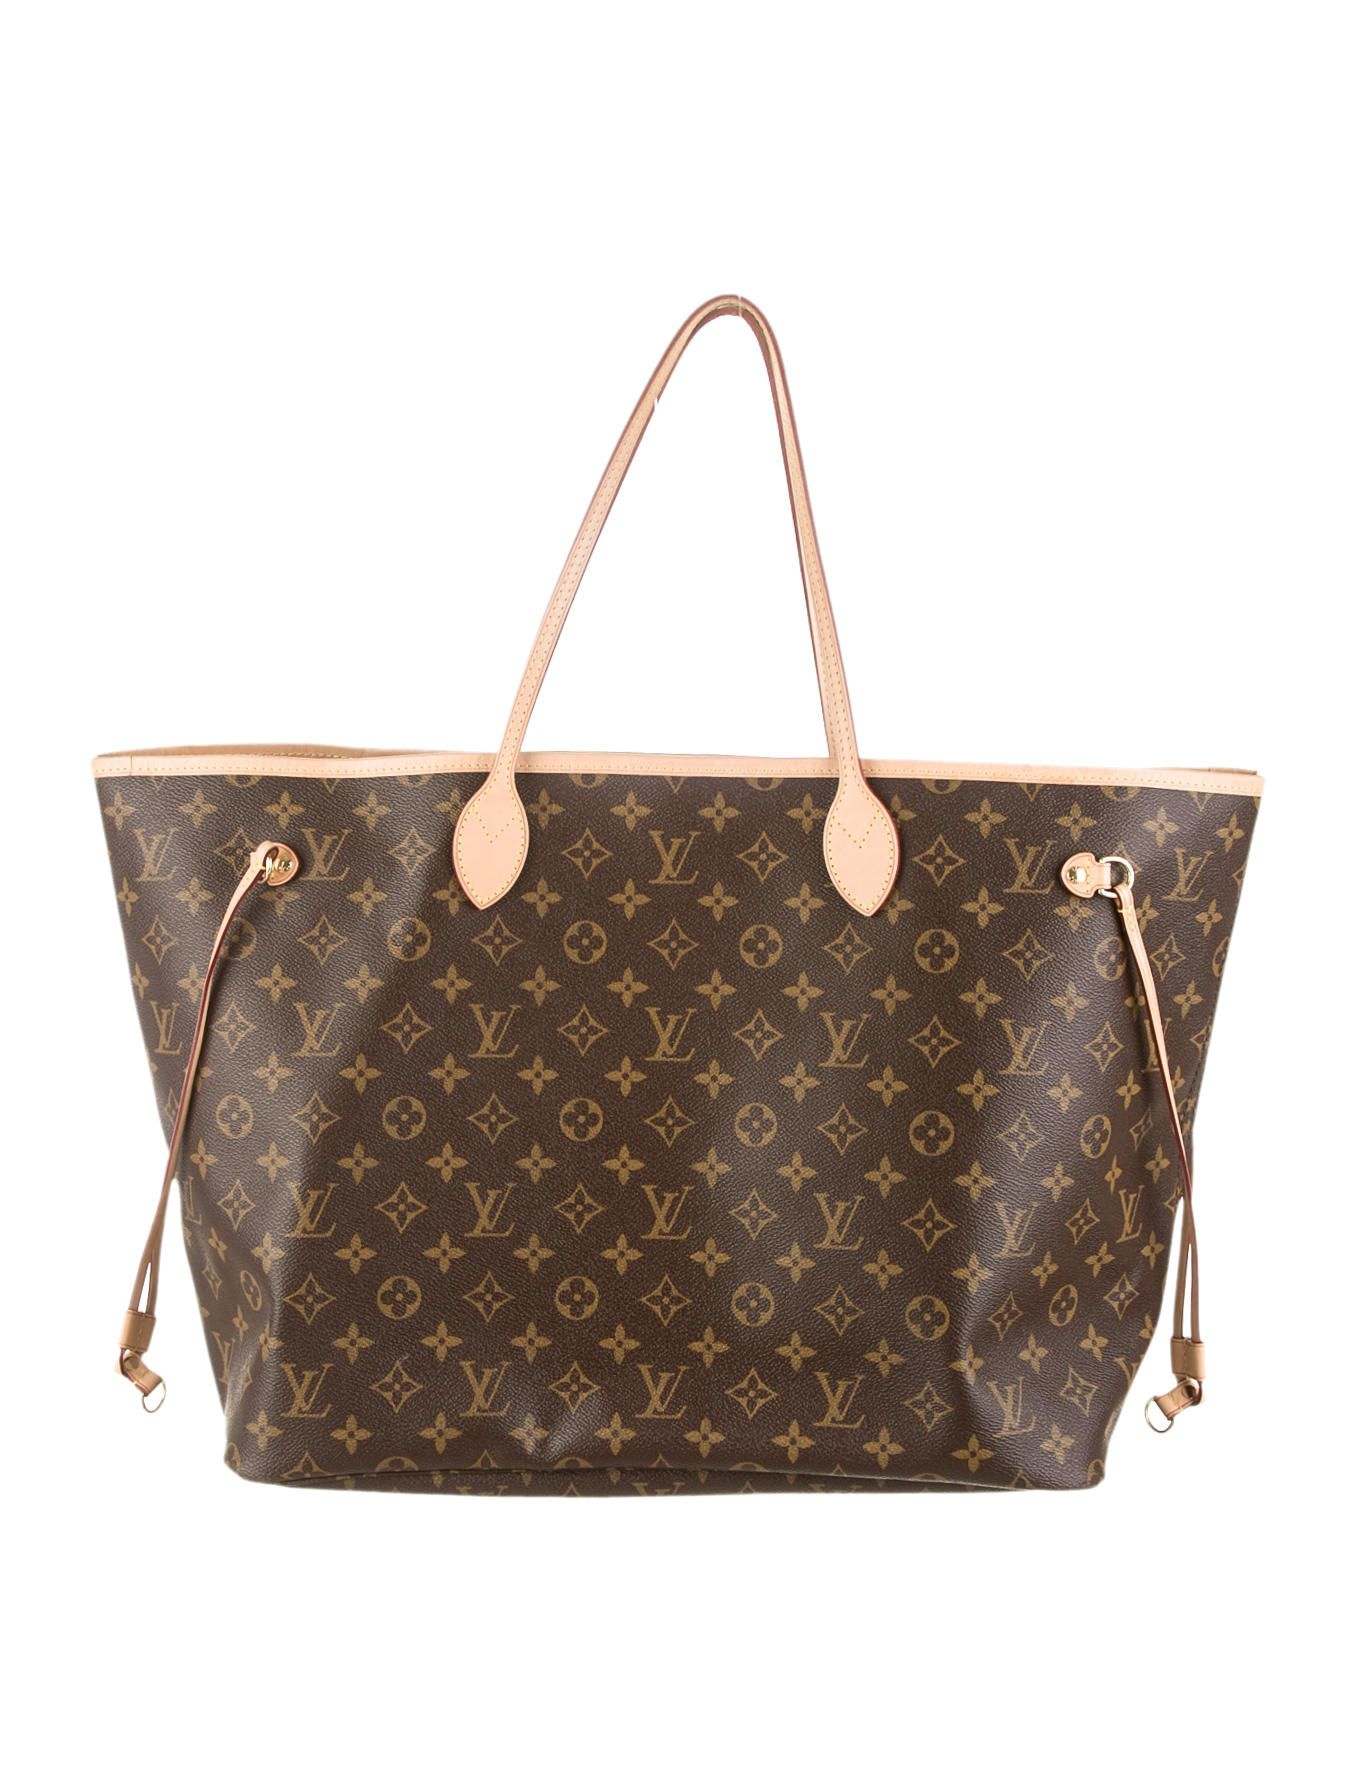 Brown coated monogram canvas Louis Vuitton Monogram Neverfull GM tote with vachetta  leather trim 7aba422cdac04